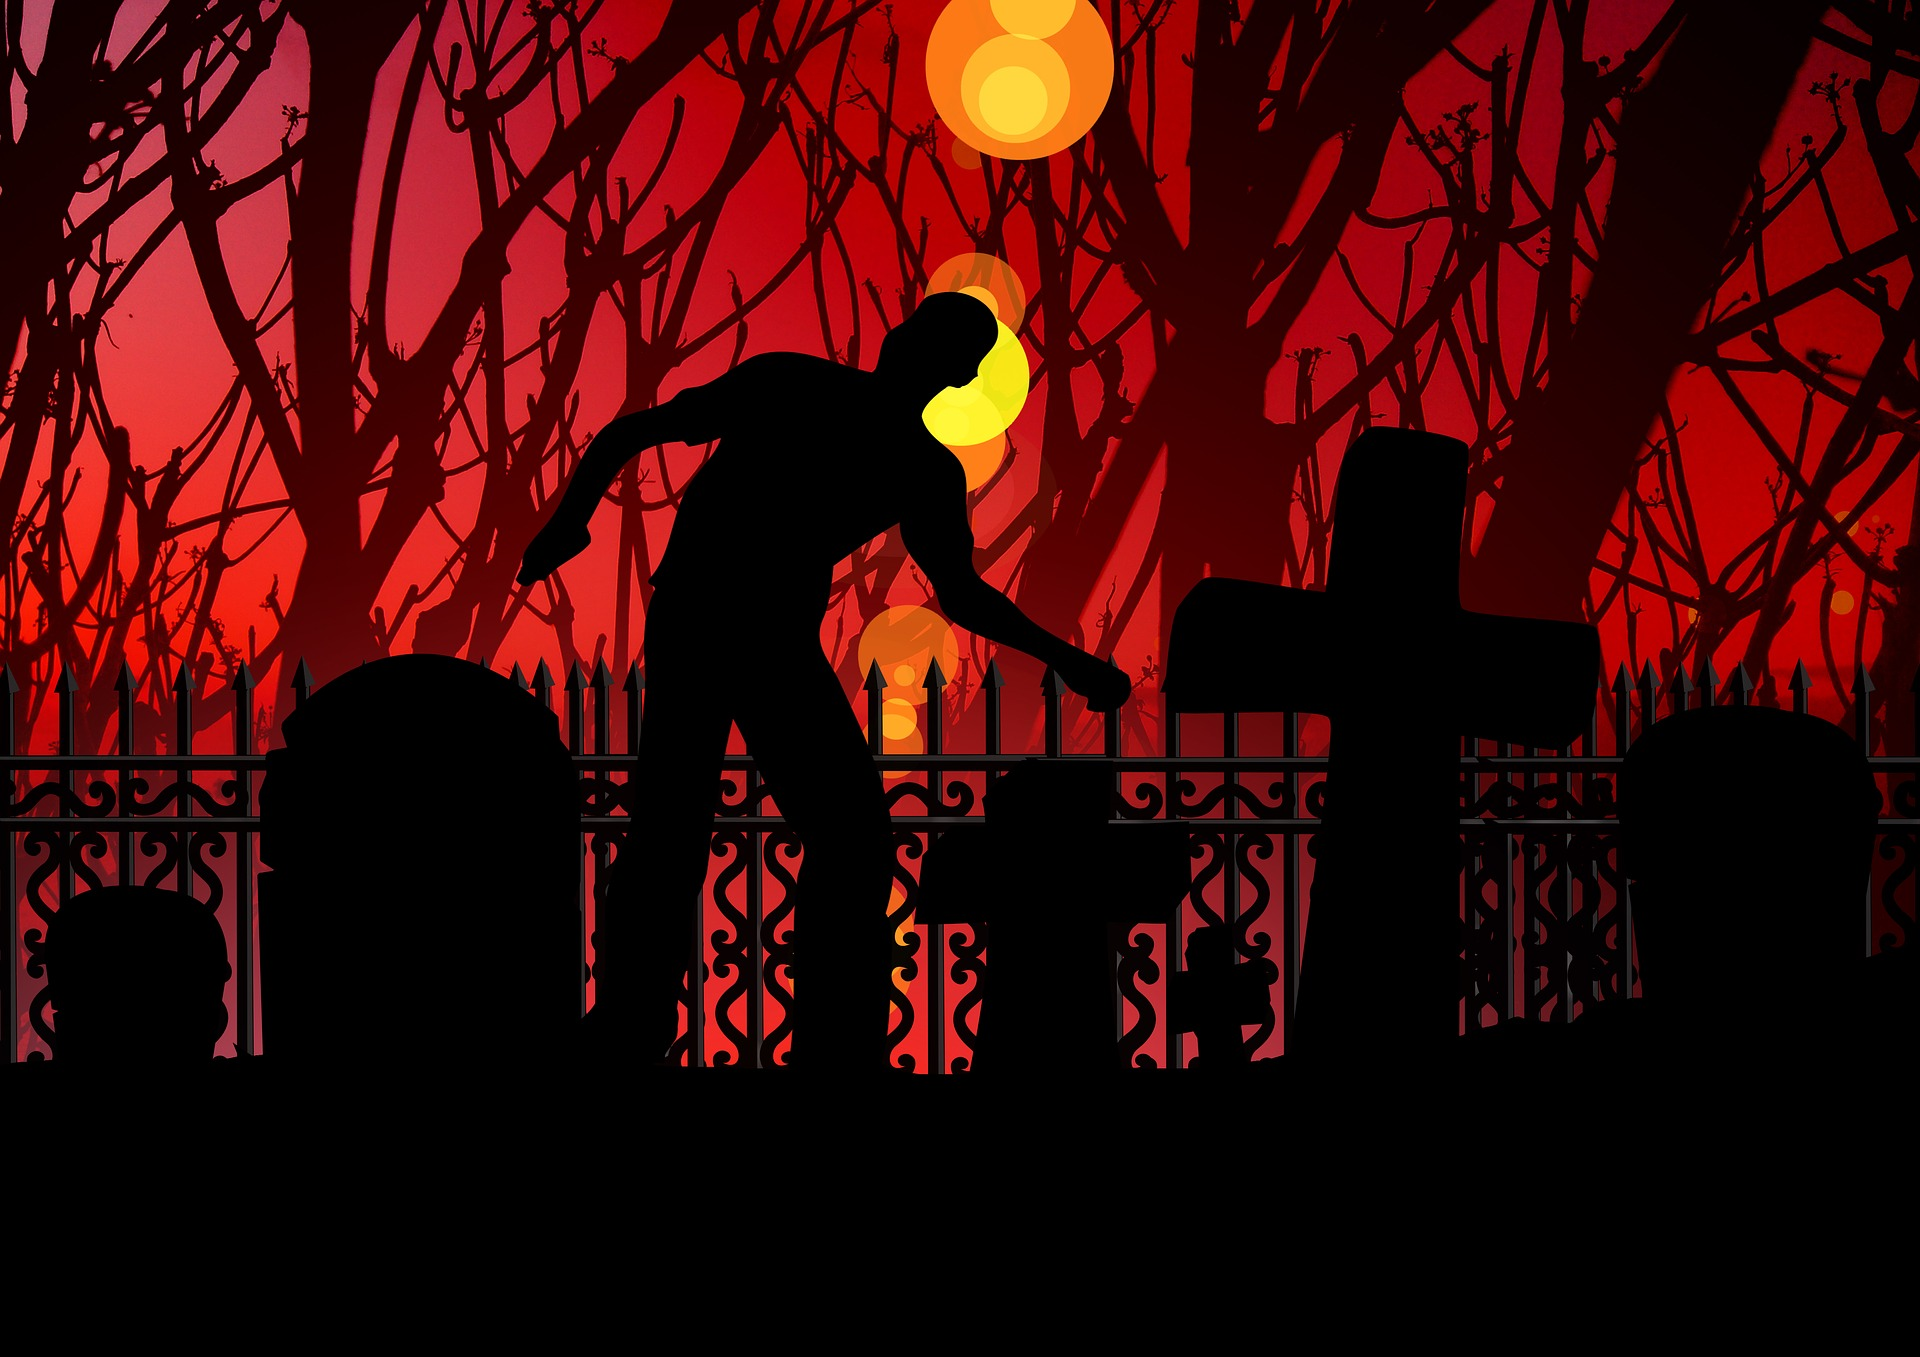 Zombie lurching through the streets as part of Rebecca Grabill's 10 Nights of Halloween Series